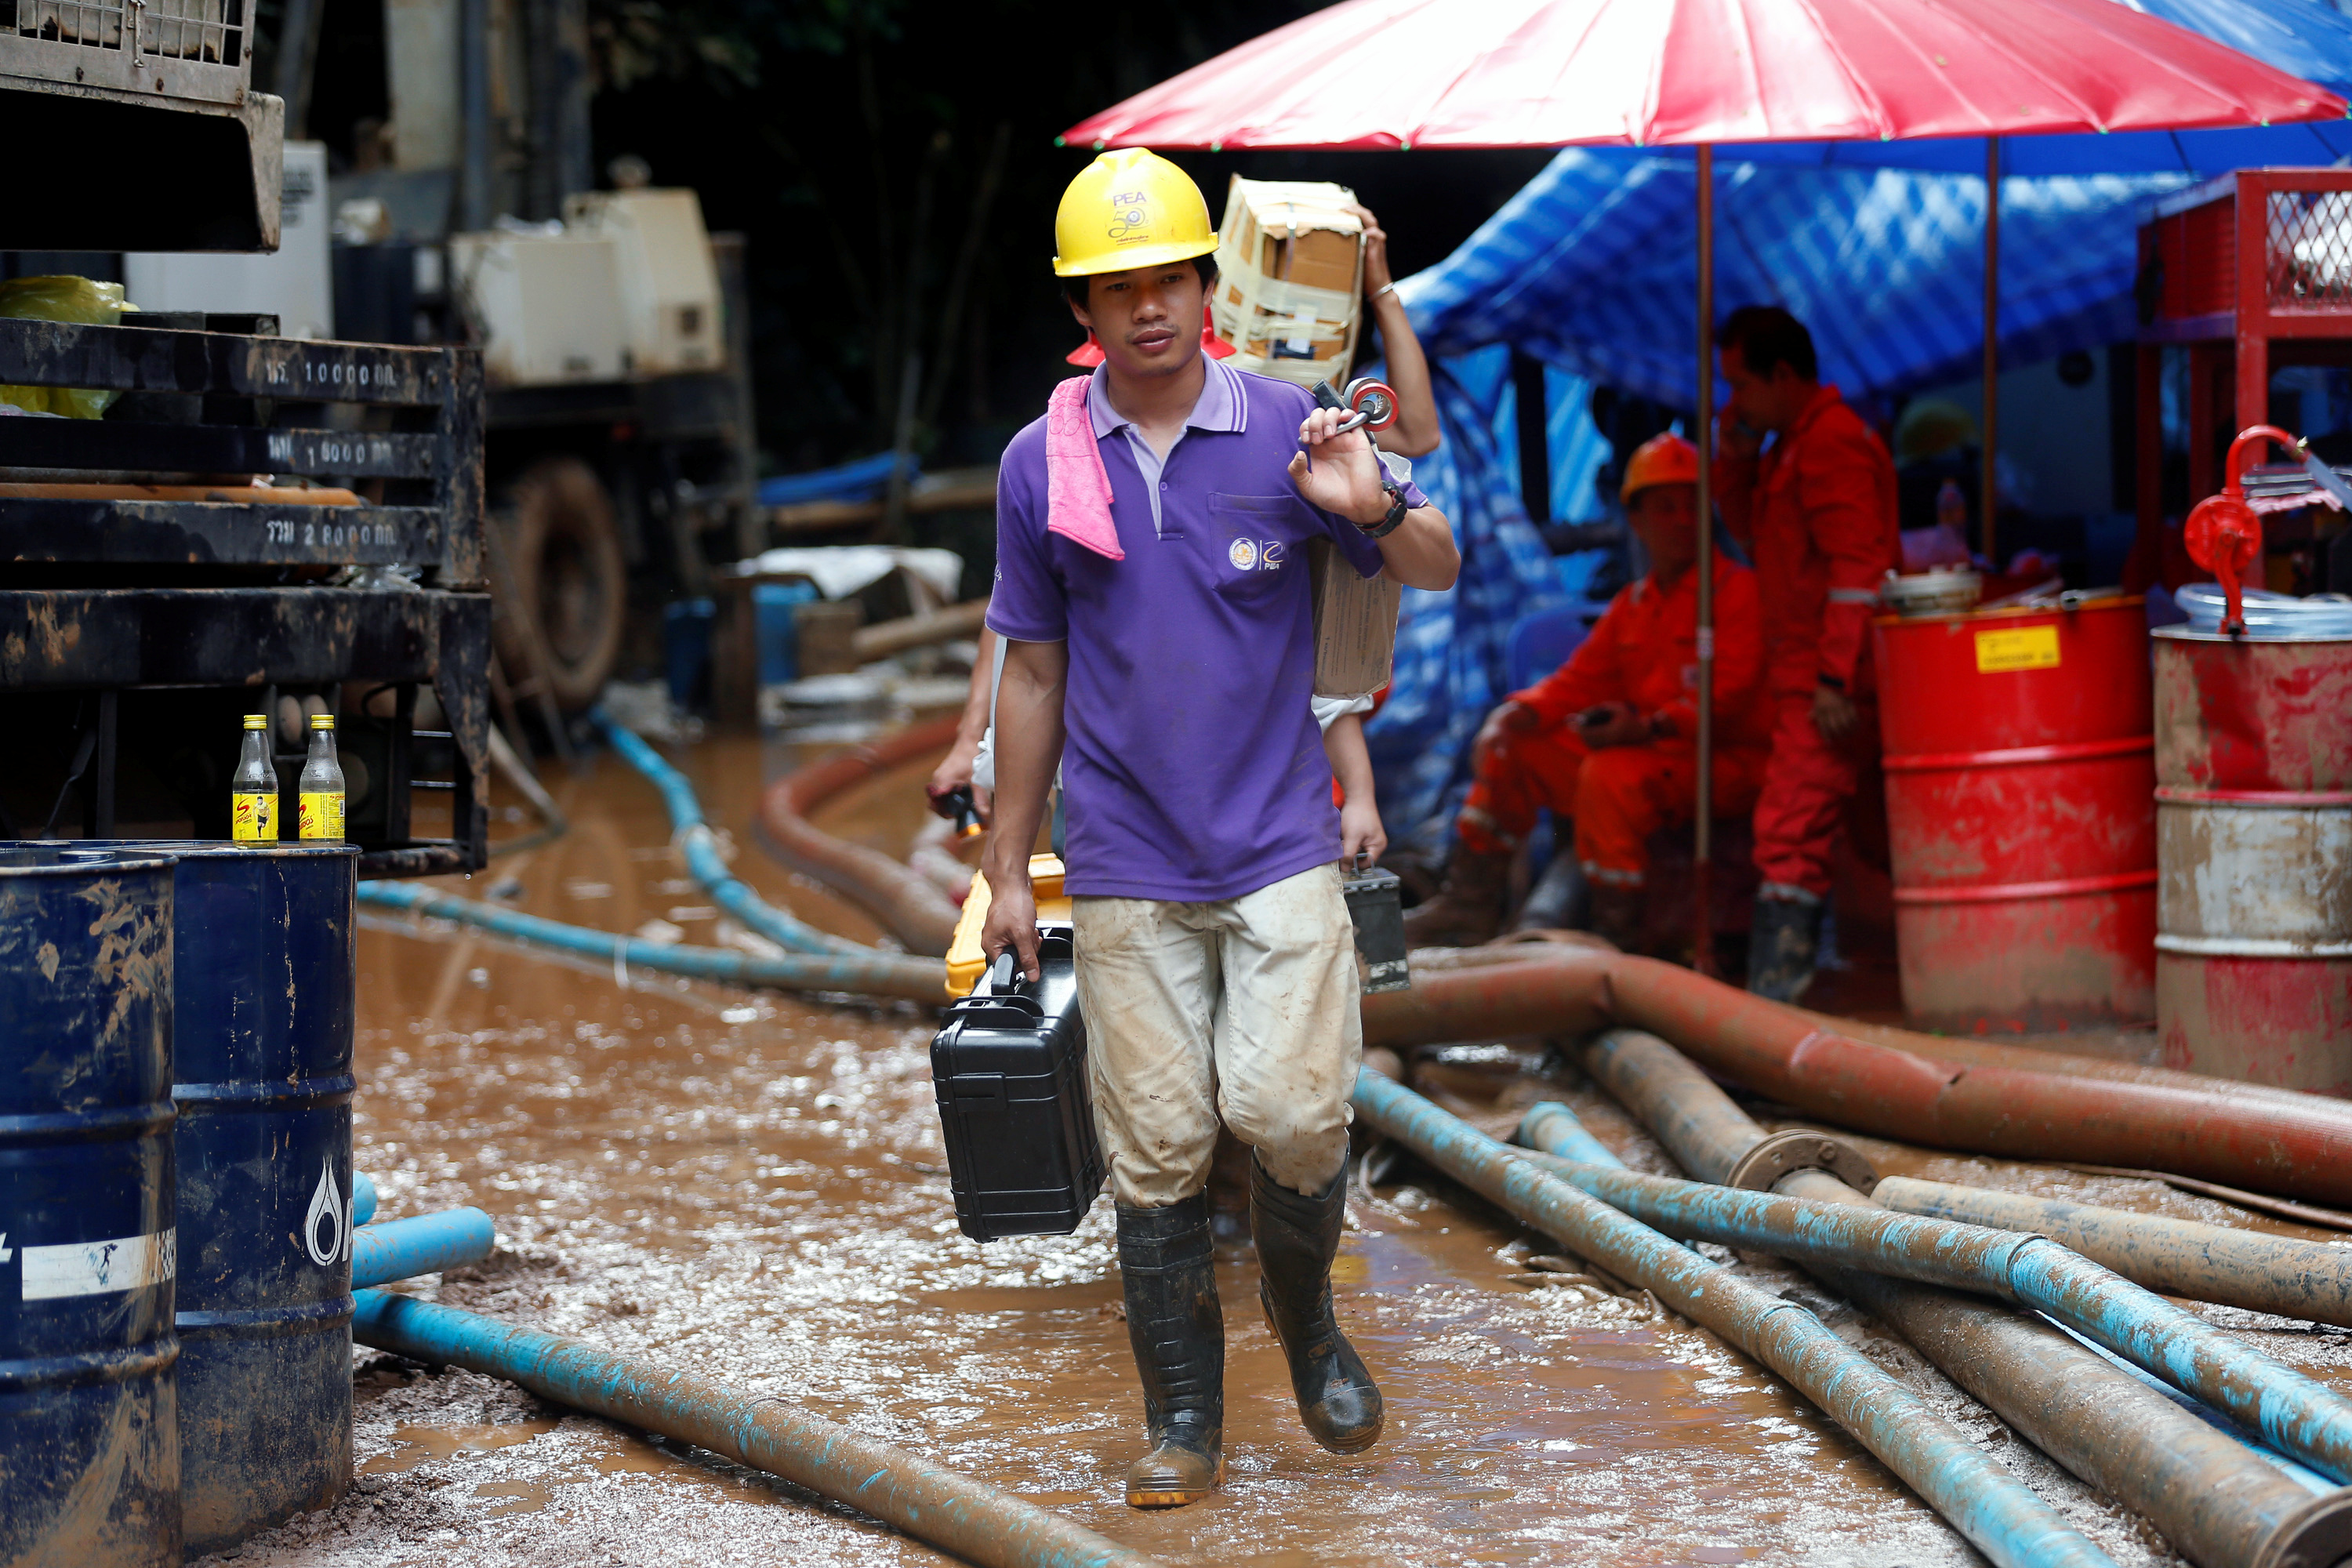 Rescue workers come out from the Tham Luang cave complex in the northern province of Chiang Rai, Thailand, July 3, 2018.